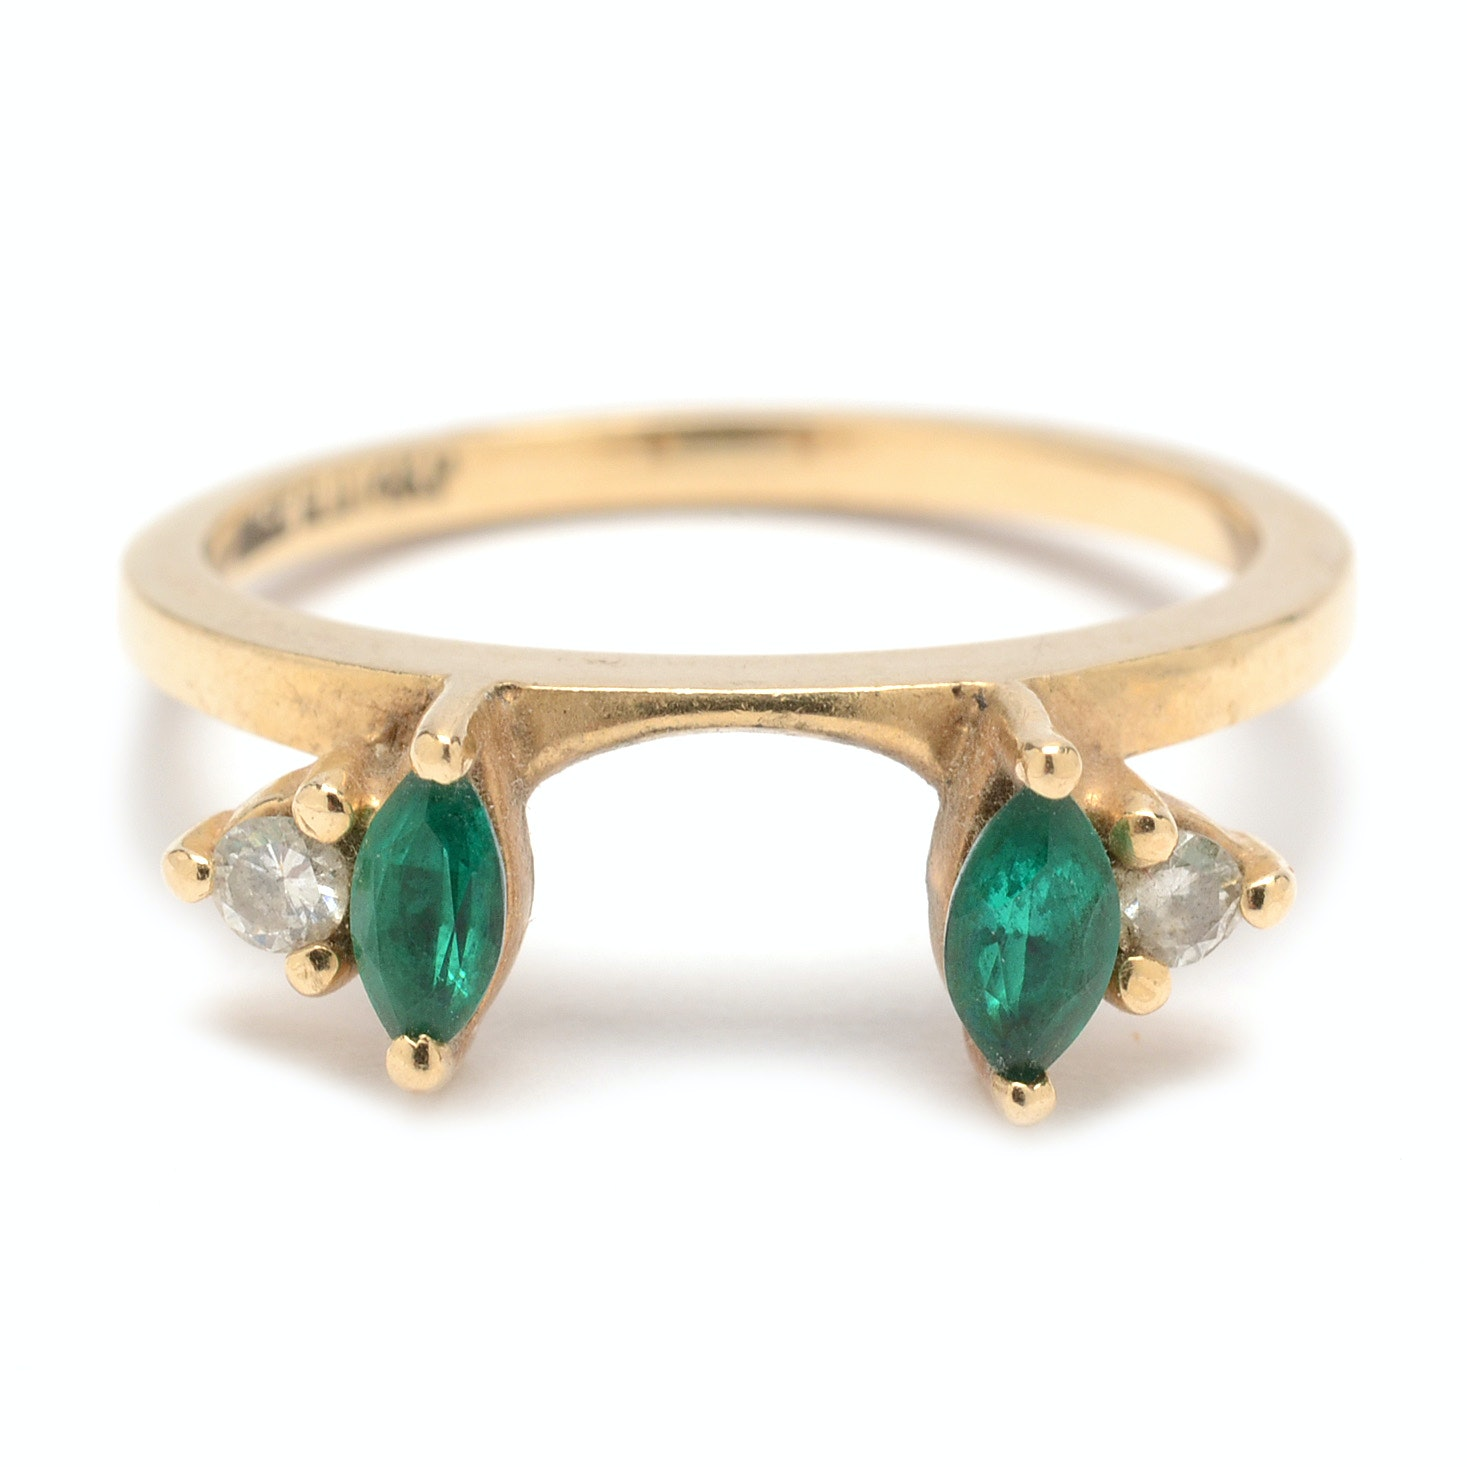 14K Yellow Gold Diamond and Emerald Ring Guard